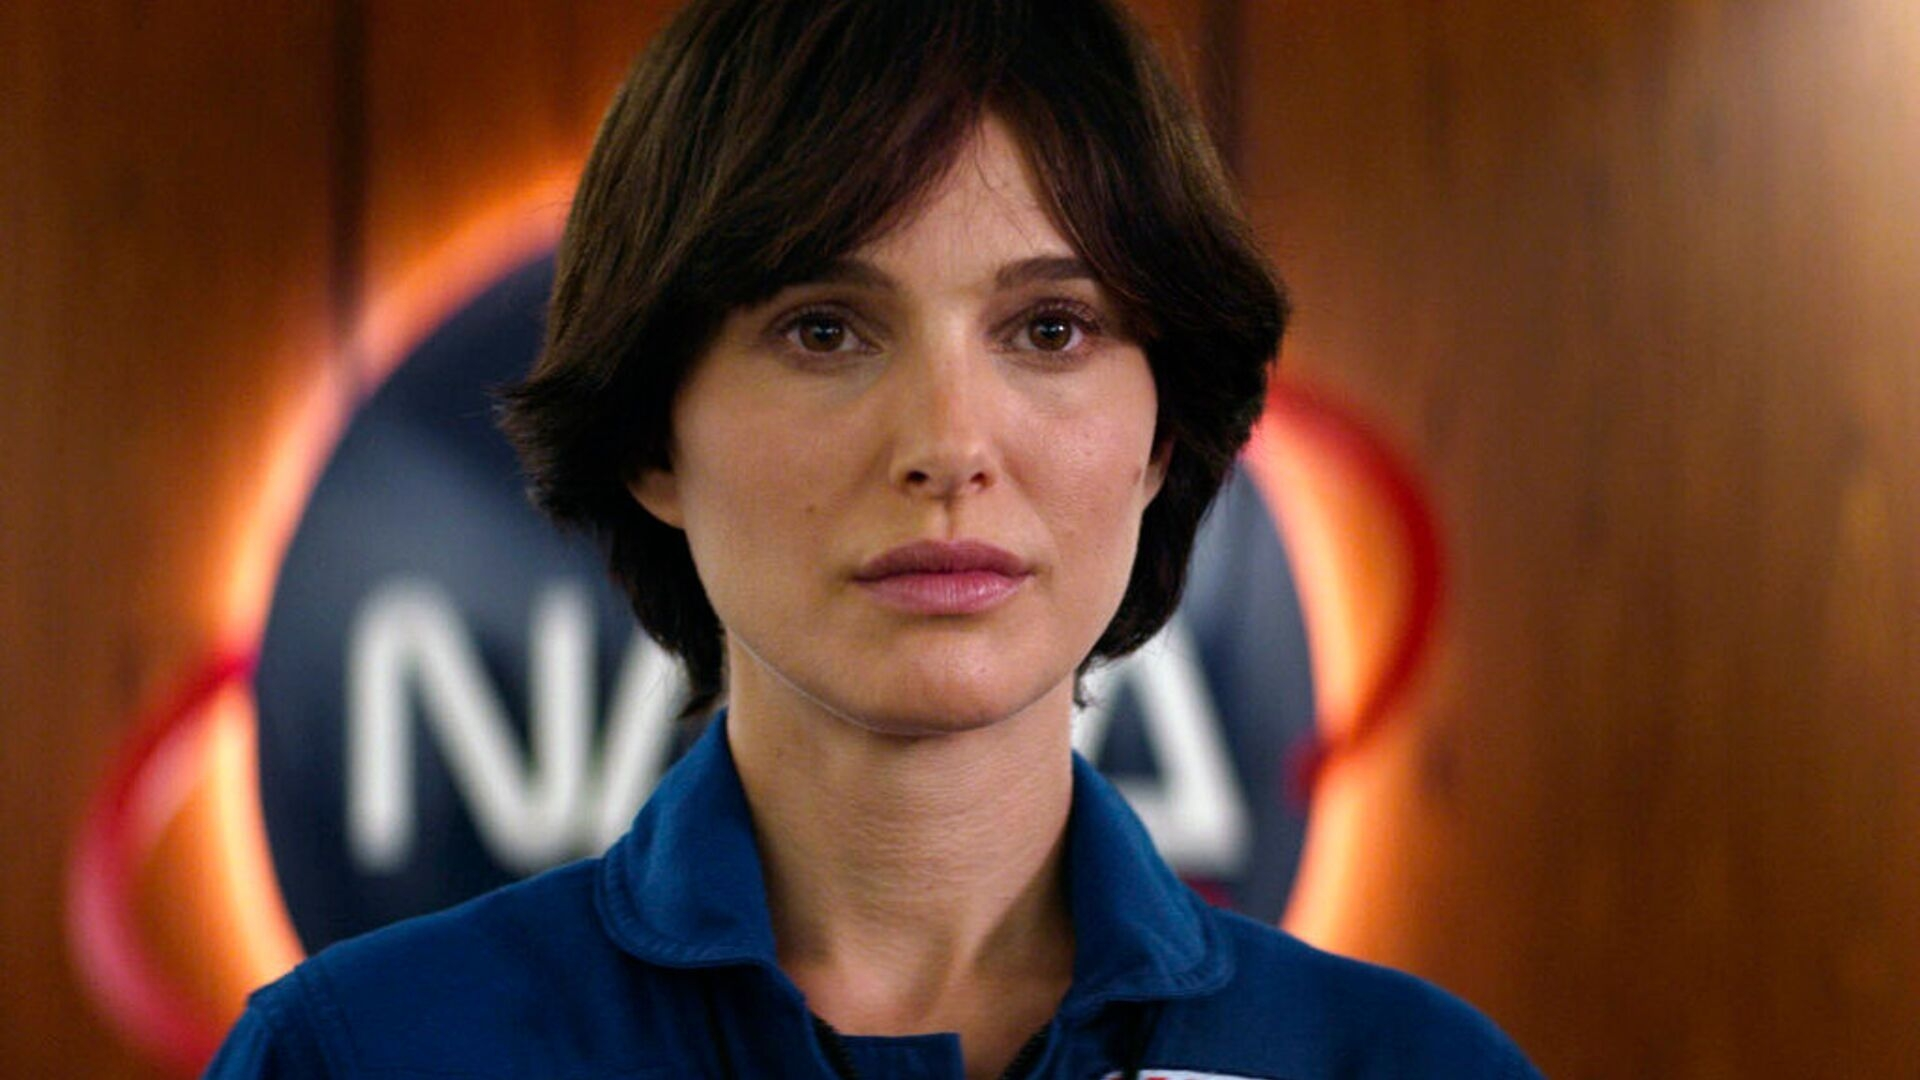 Natalie Portman's 'Lucy in the Sky' Is an Interesting Mess